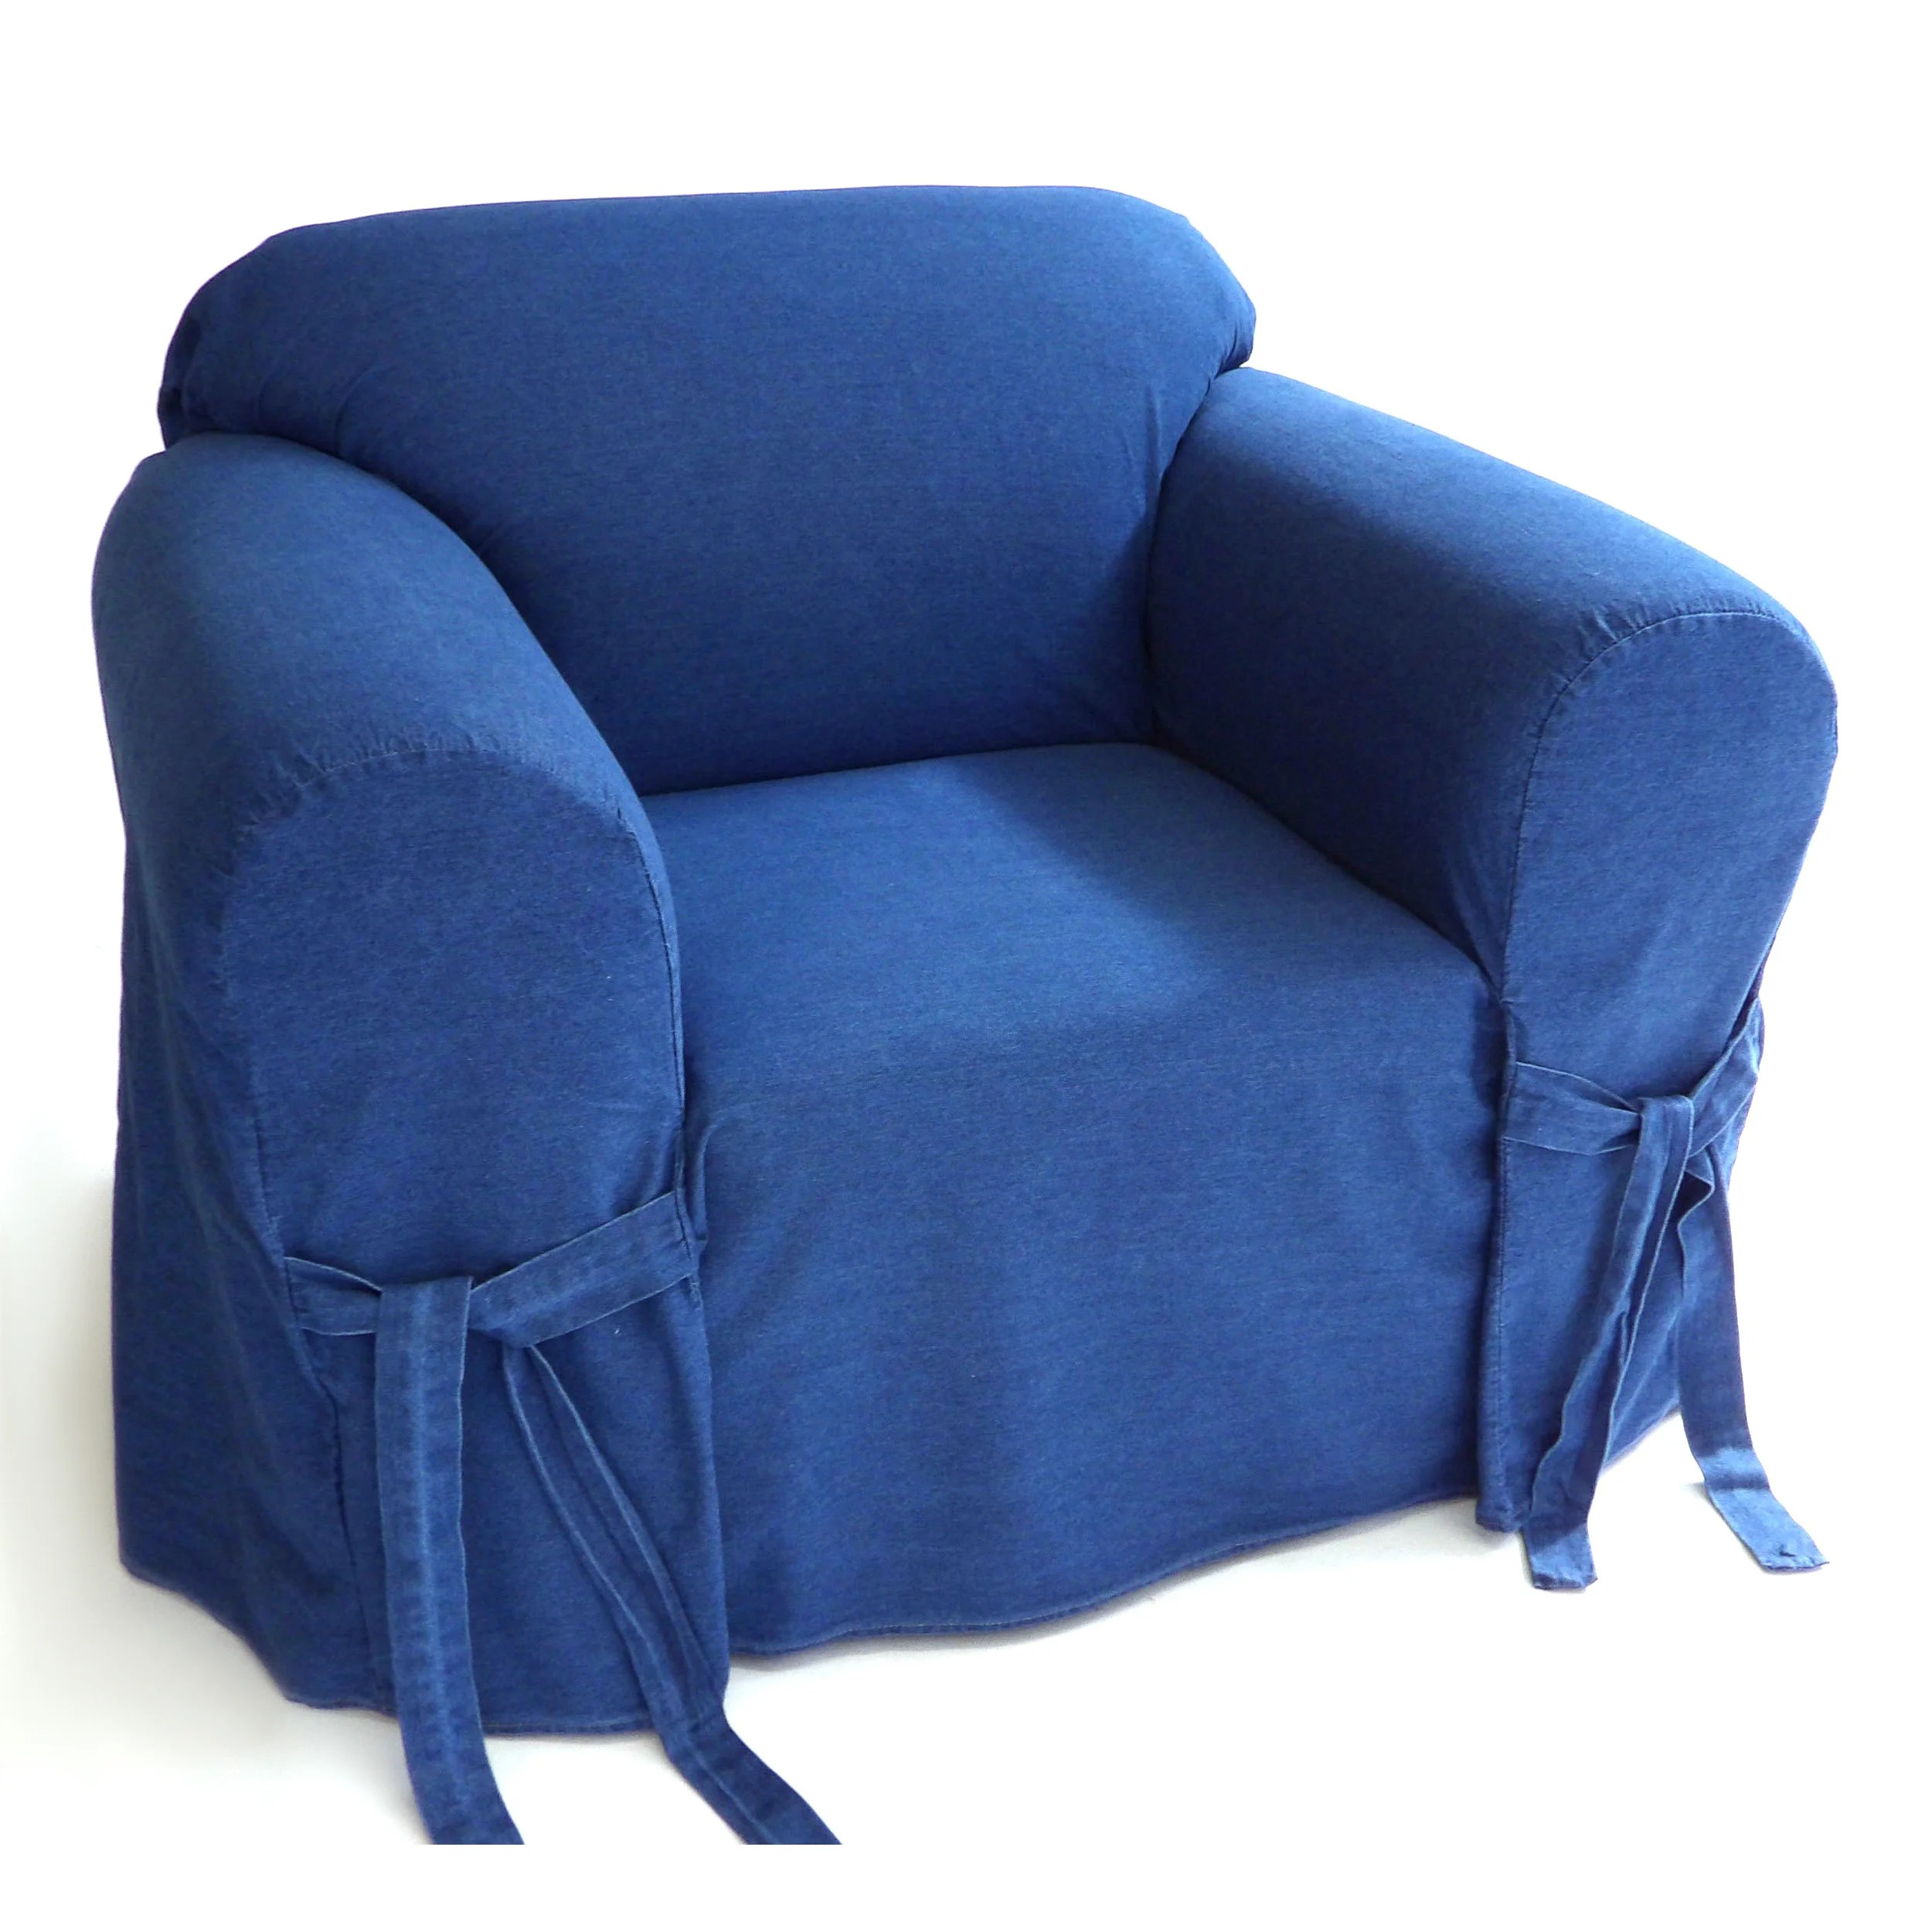 classic slipcovers blue authentic denim 12 ounce 1 piece chair slipcover